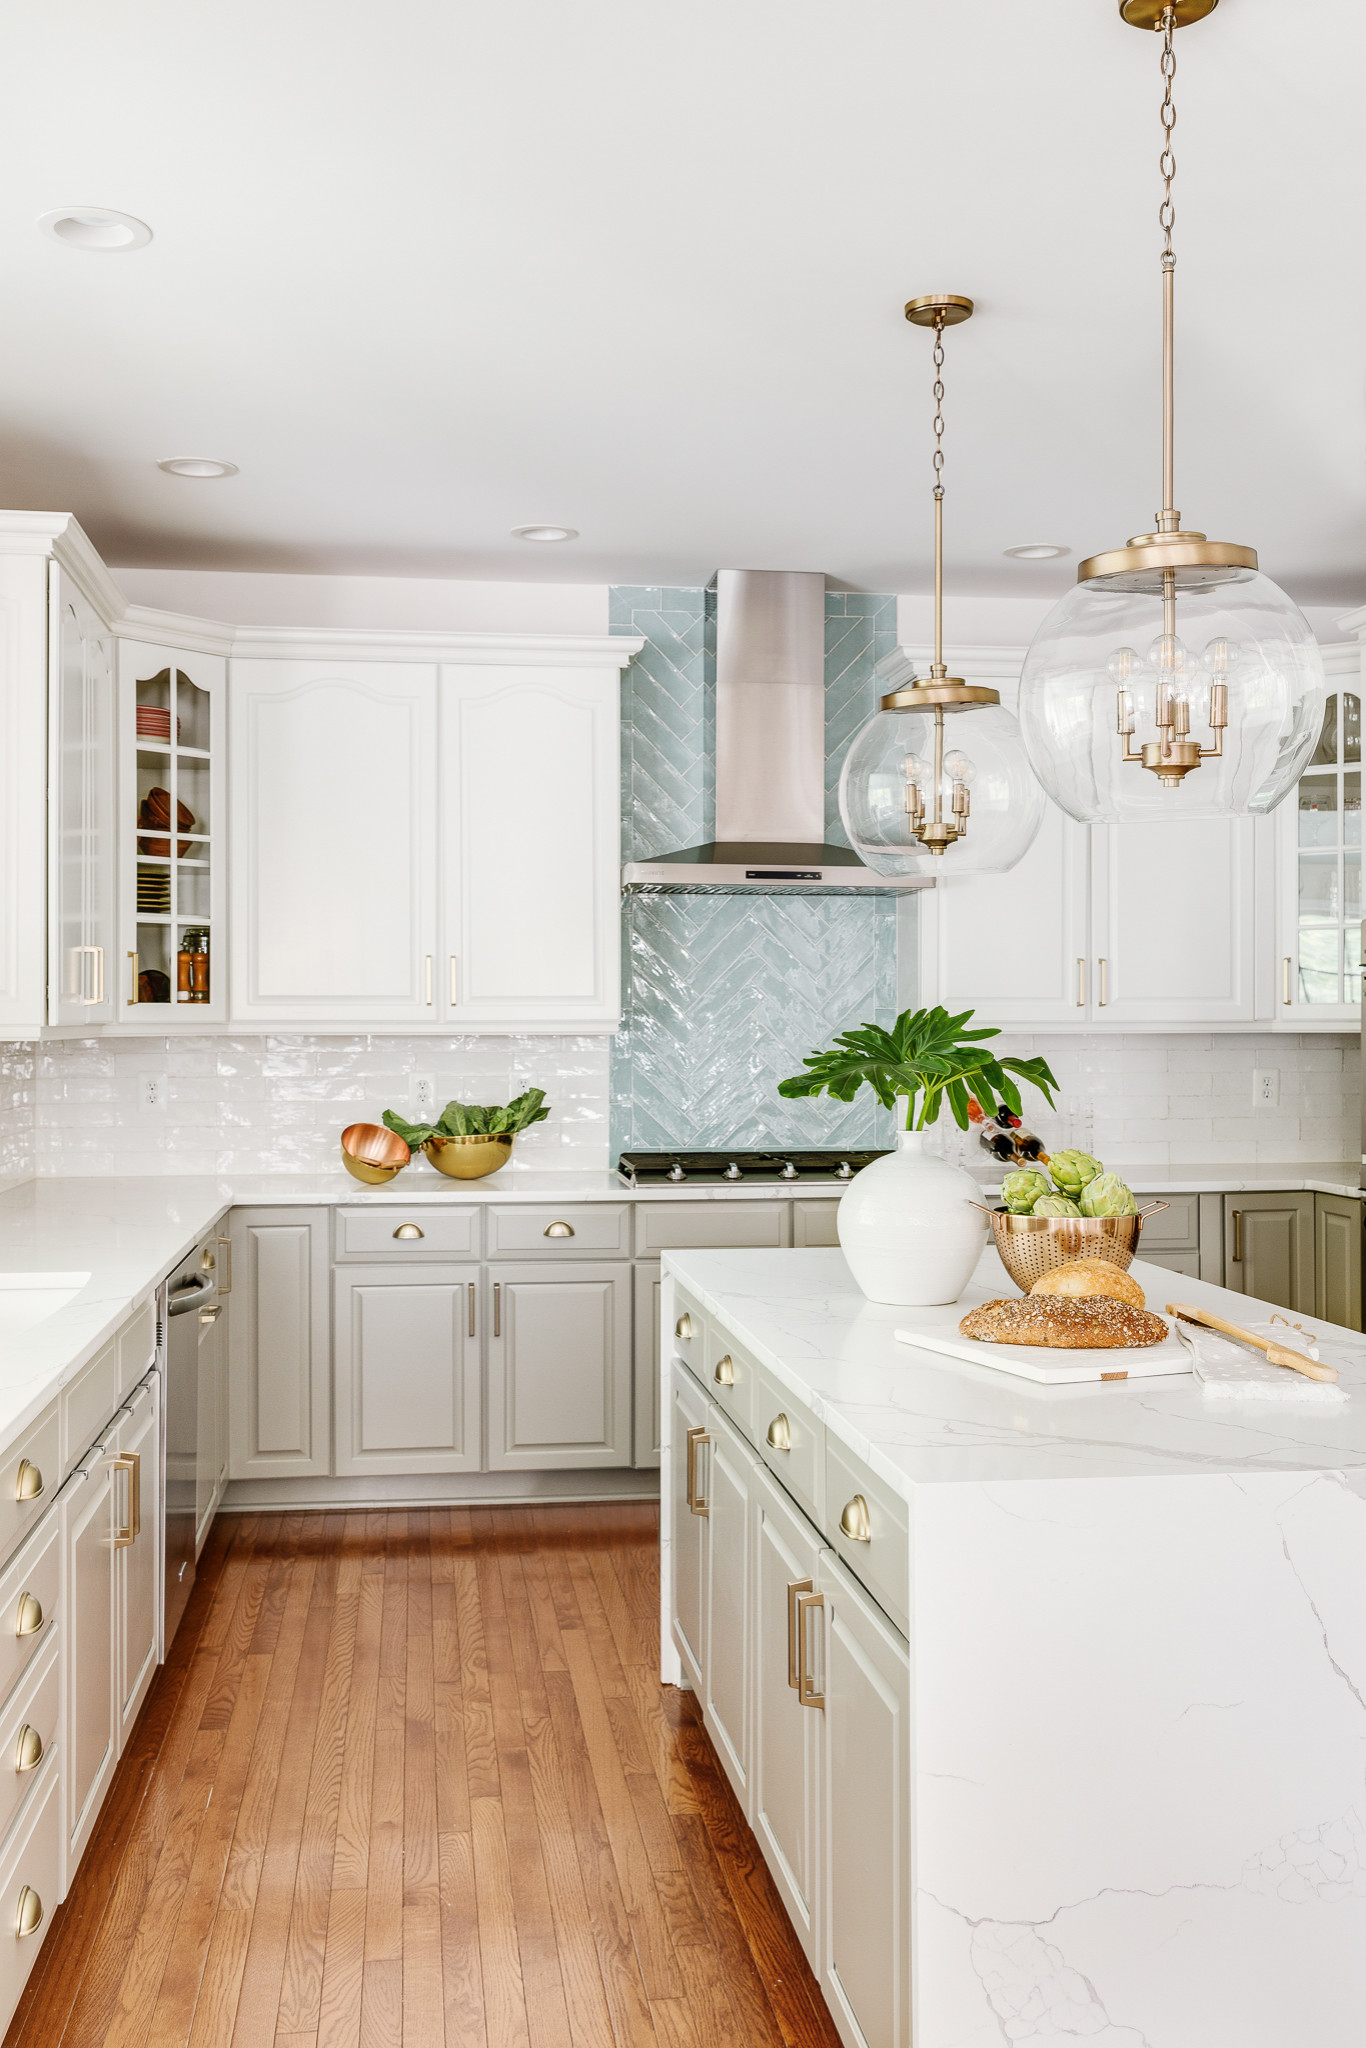 Kitchen remodel and decorating